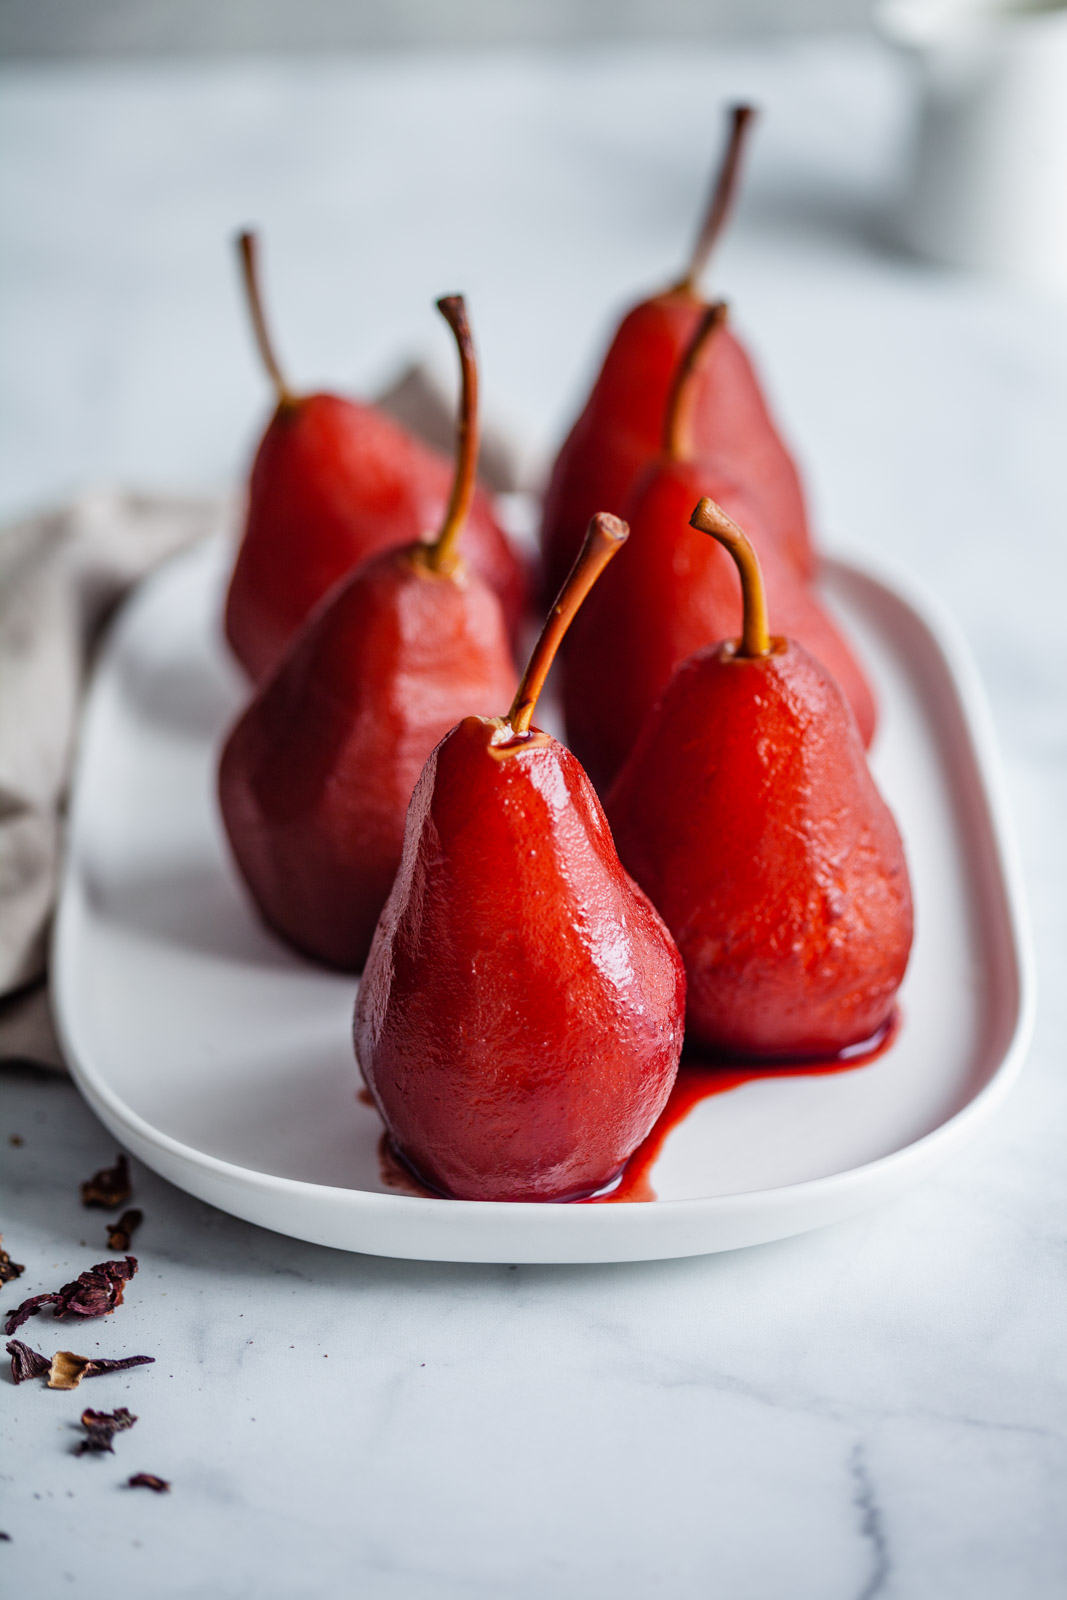 Healthy Dessert Recipe: Baked Vanilla Yogurt With Hibiscus Poached Pears